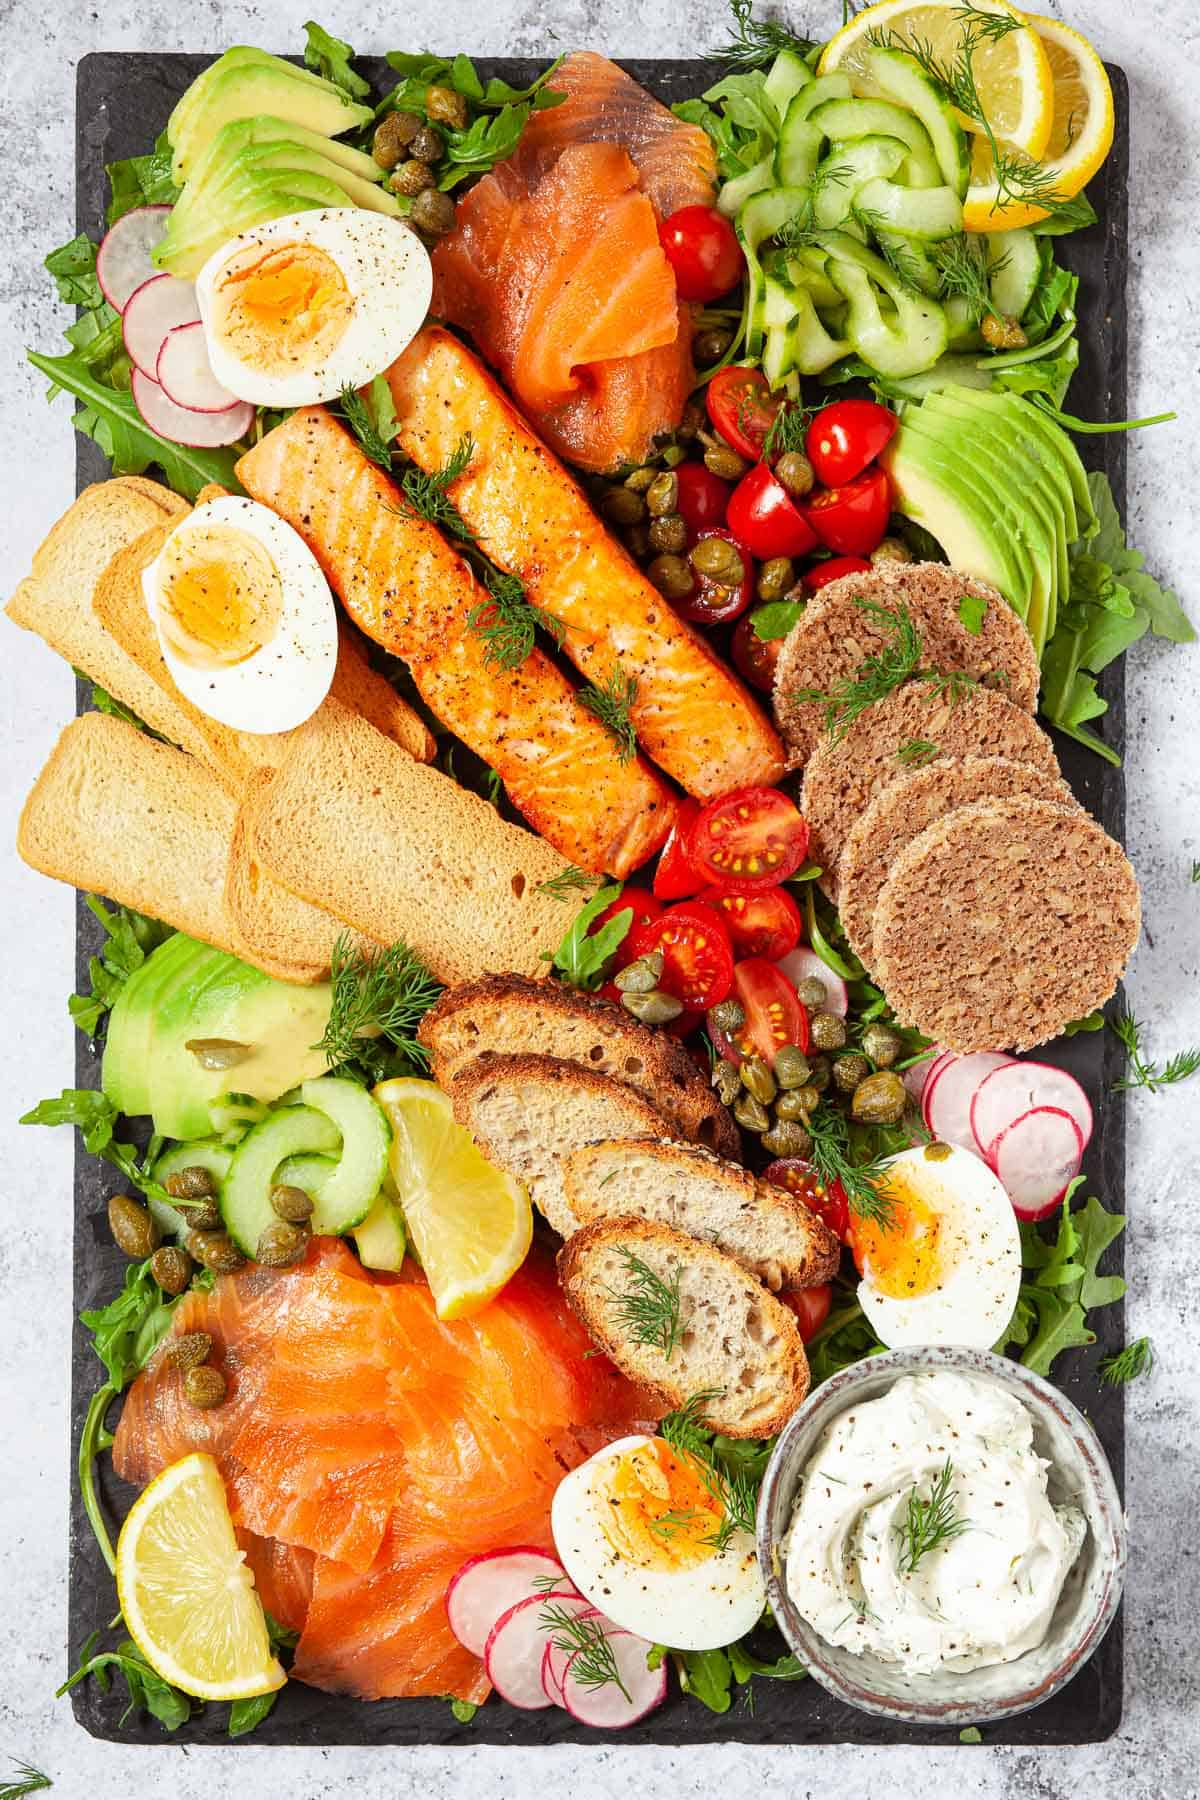 A salmon platter with eggs, vegetables and mixed toasts